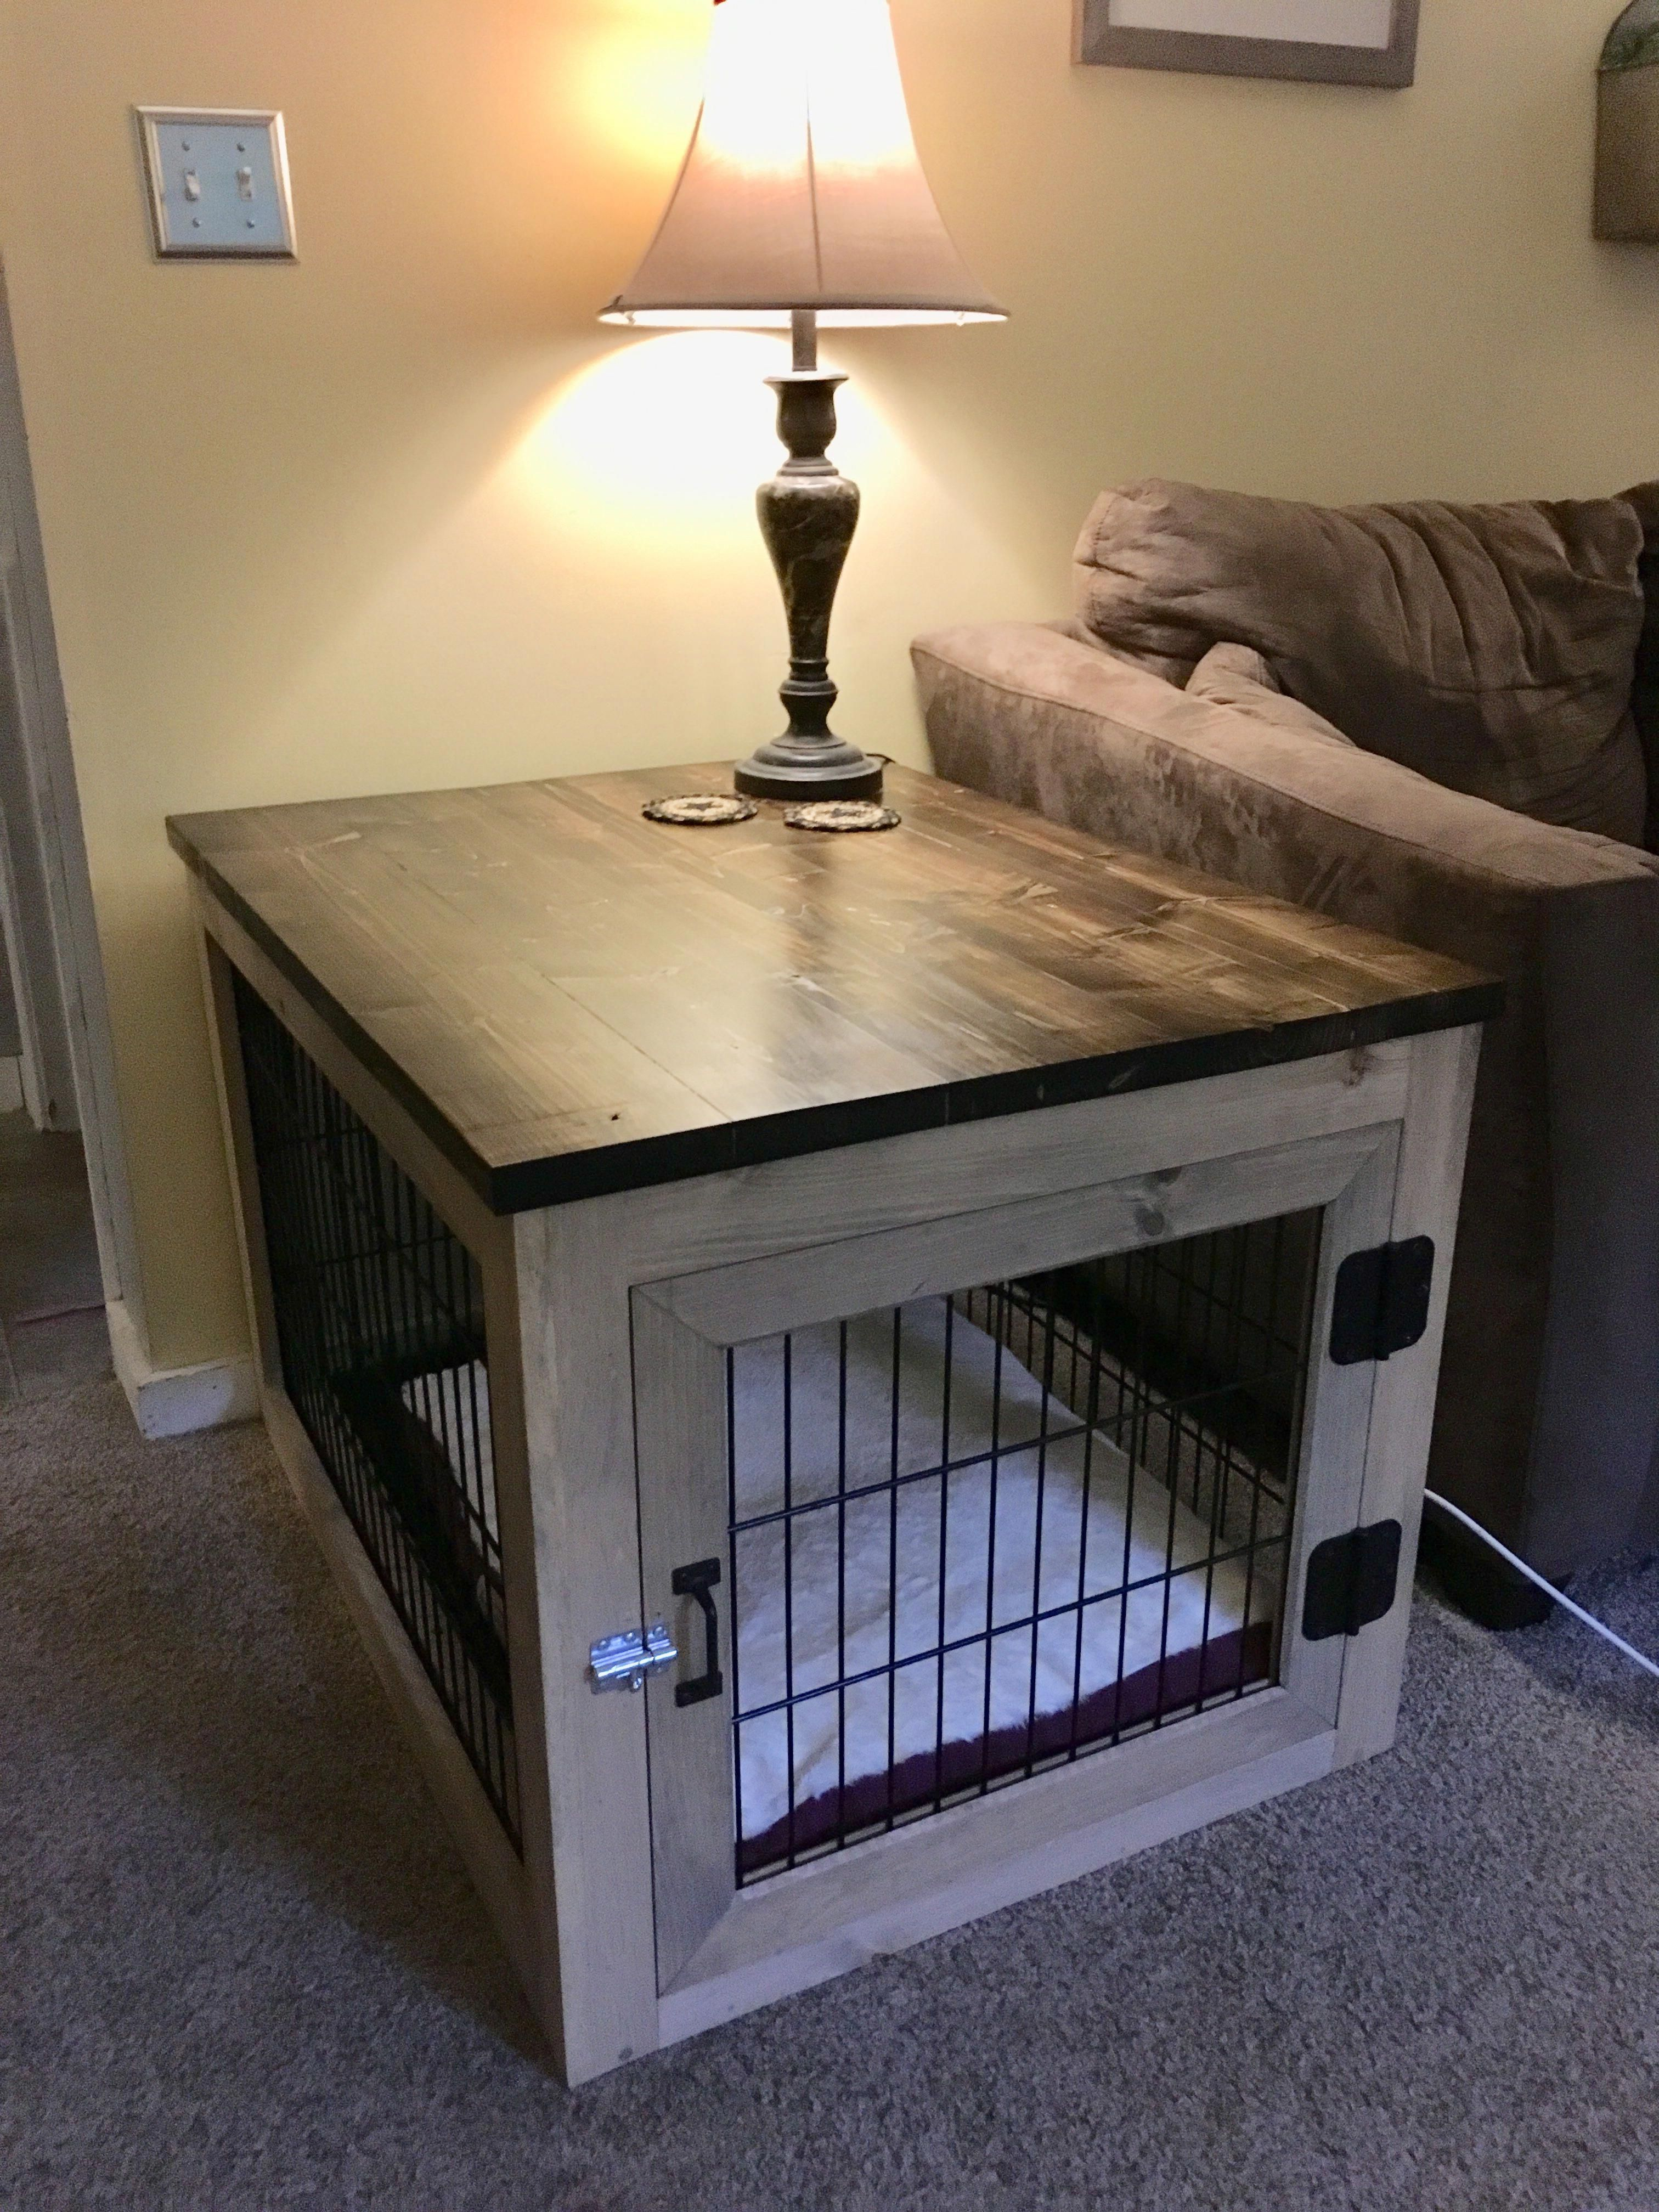 12 Awesome Dog Crates For Large Dogs 36 Inches Dog Crate On Wheels